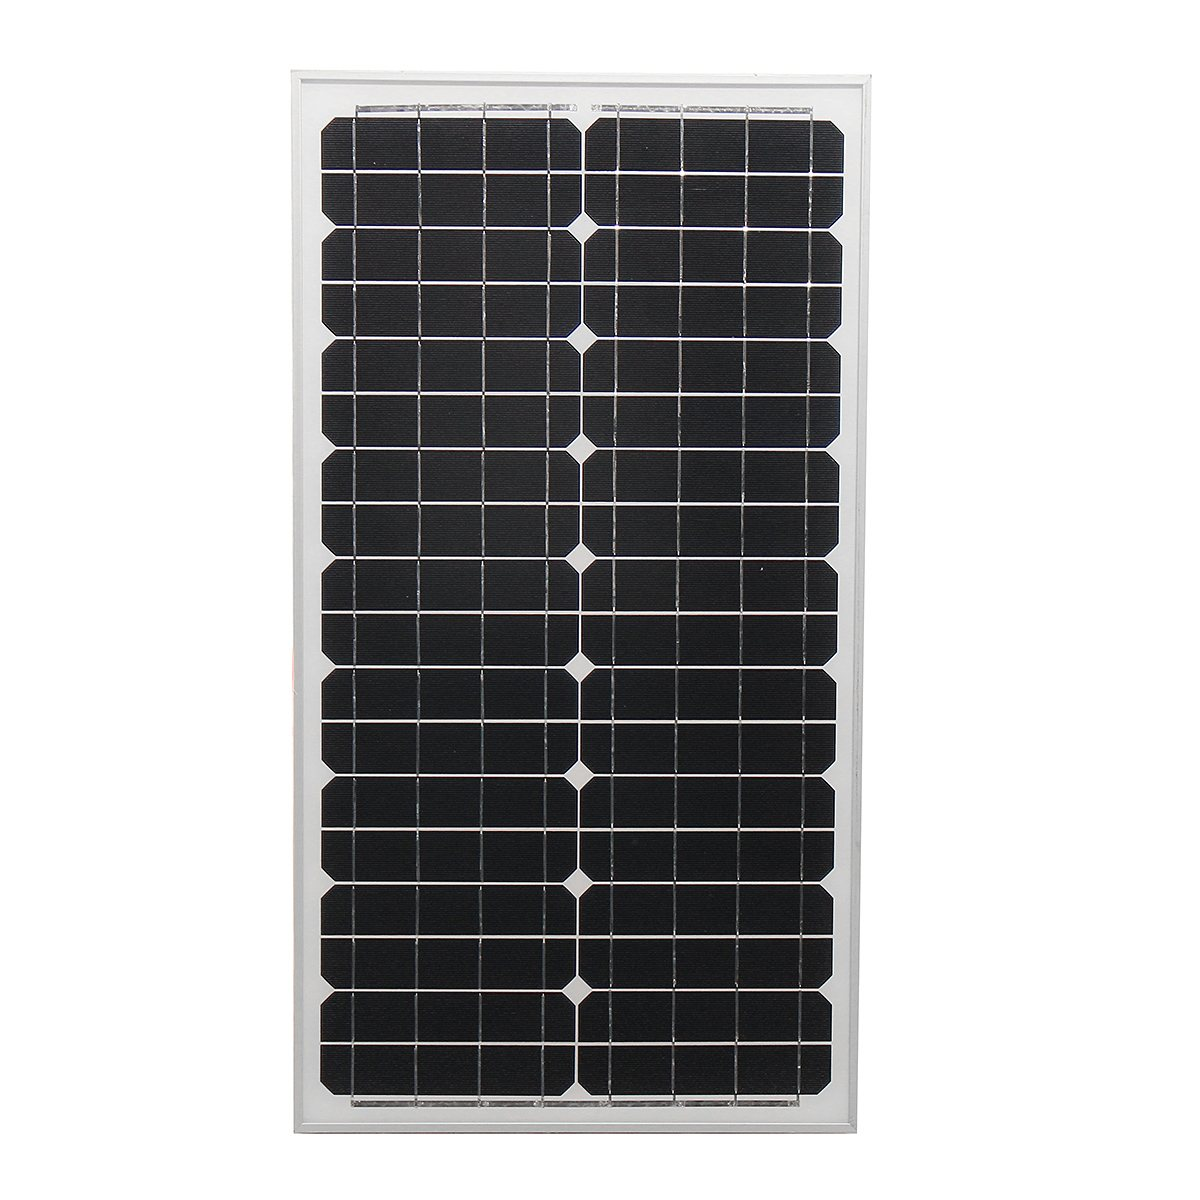 LEORY 30w 18v Solar Panel Monocrystalline Silicon High Conversion Rate Solar Cell  With Glass Bearing Plate For Car Battery sp 36 120w 12v semi flexible monocrystalline solar panel waterproof high conversion efficiency for rv boat car 1 5m cable